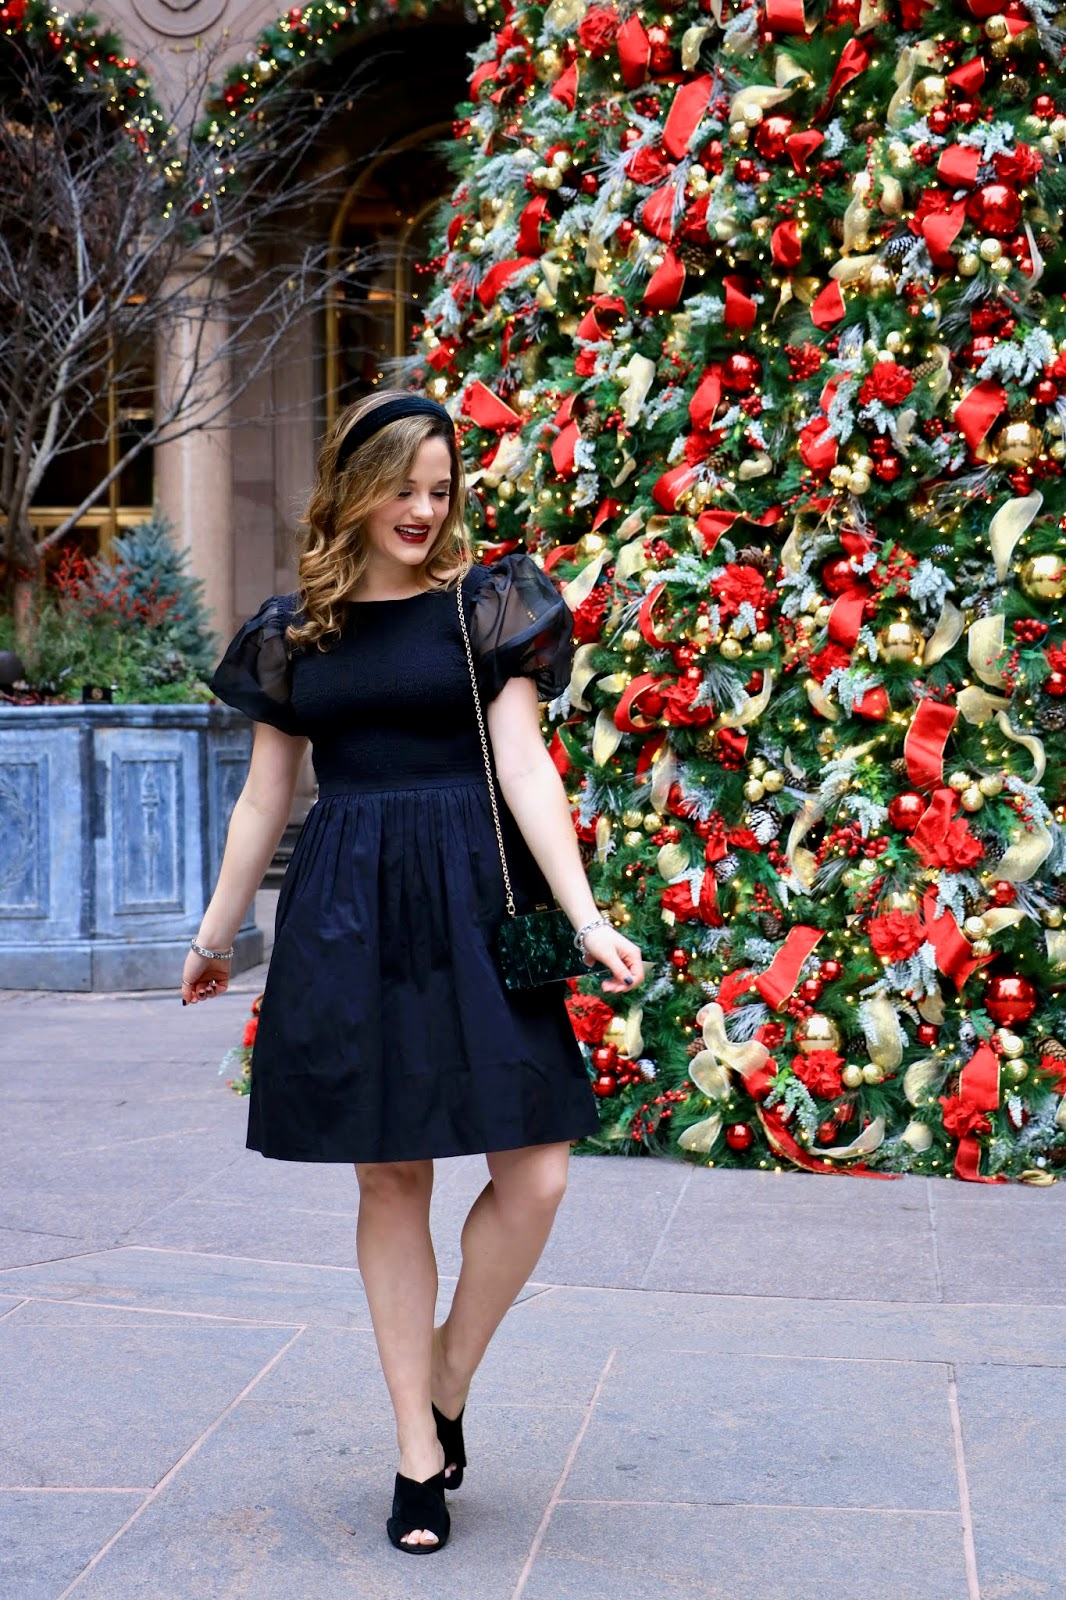 Nyc fashion blogger Kathleen Harper wearing a holiday party outfit.